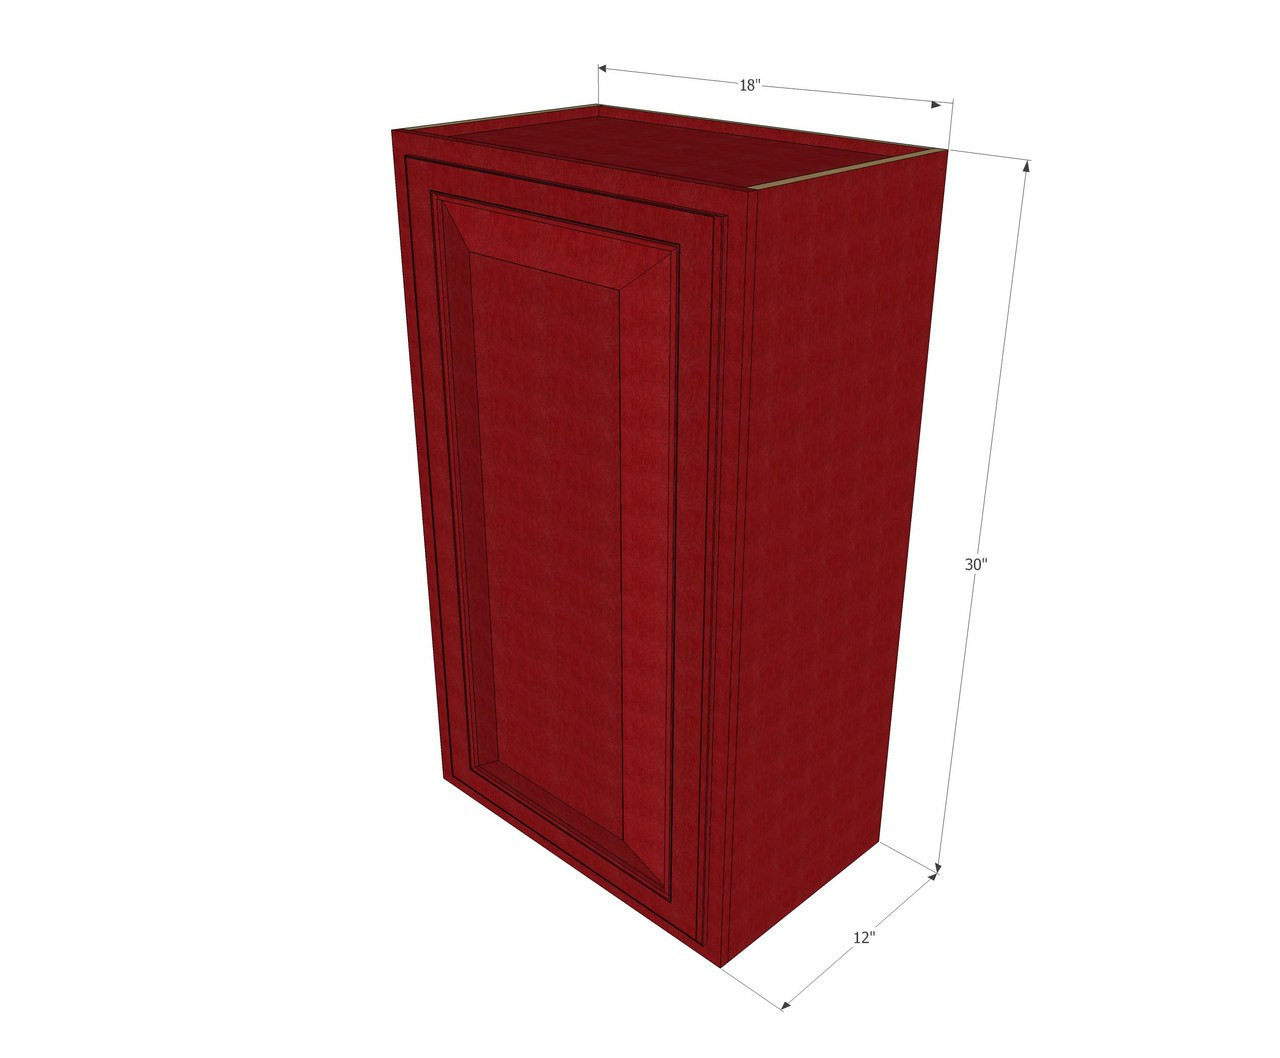 kitchen cabinet 18 inches wide small single door grand reserve cherry wall cabinet 18 18179